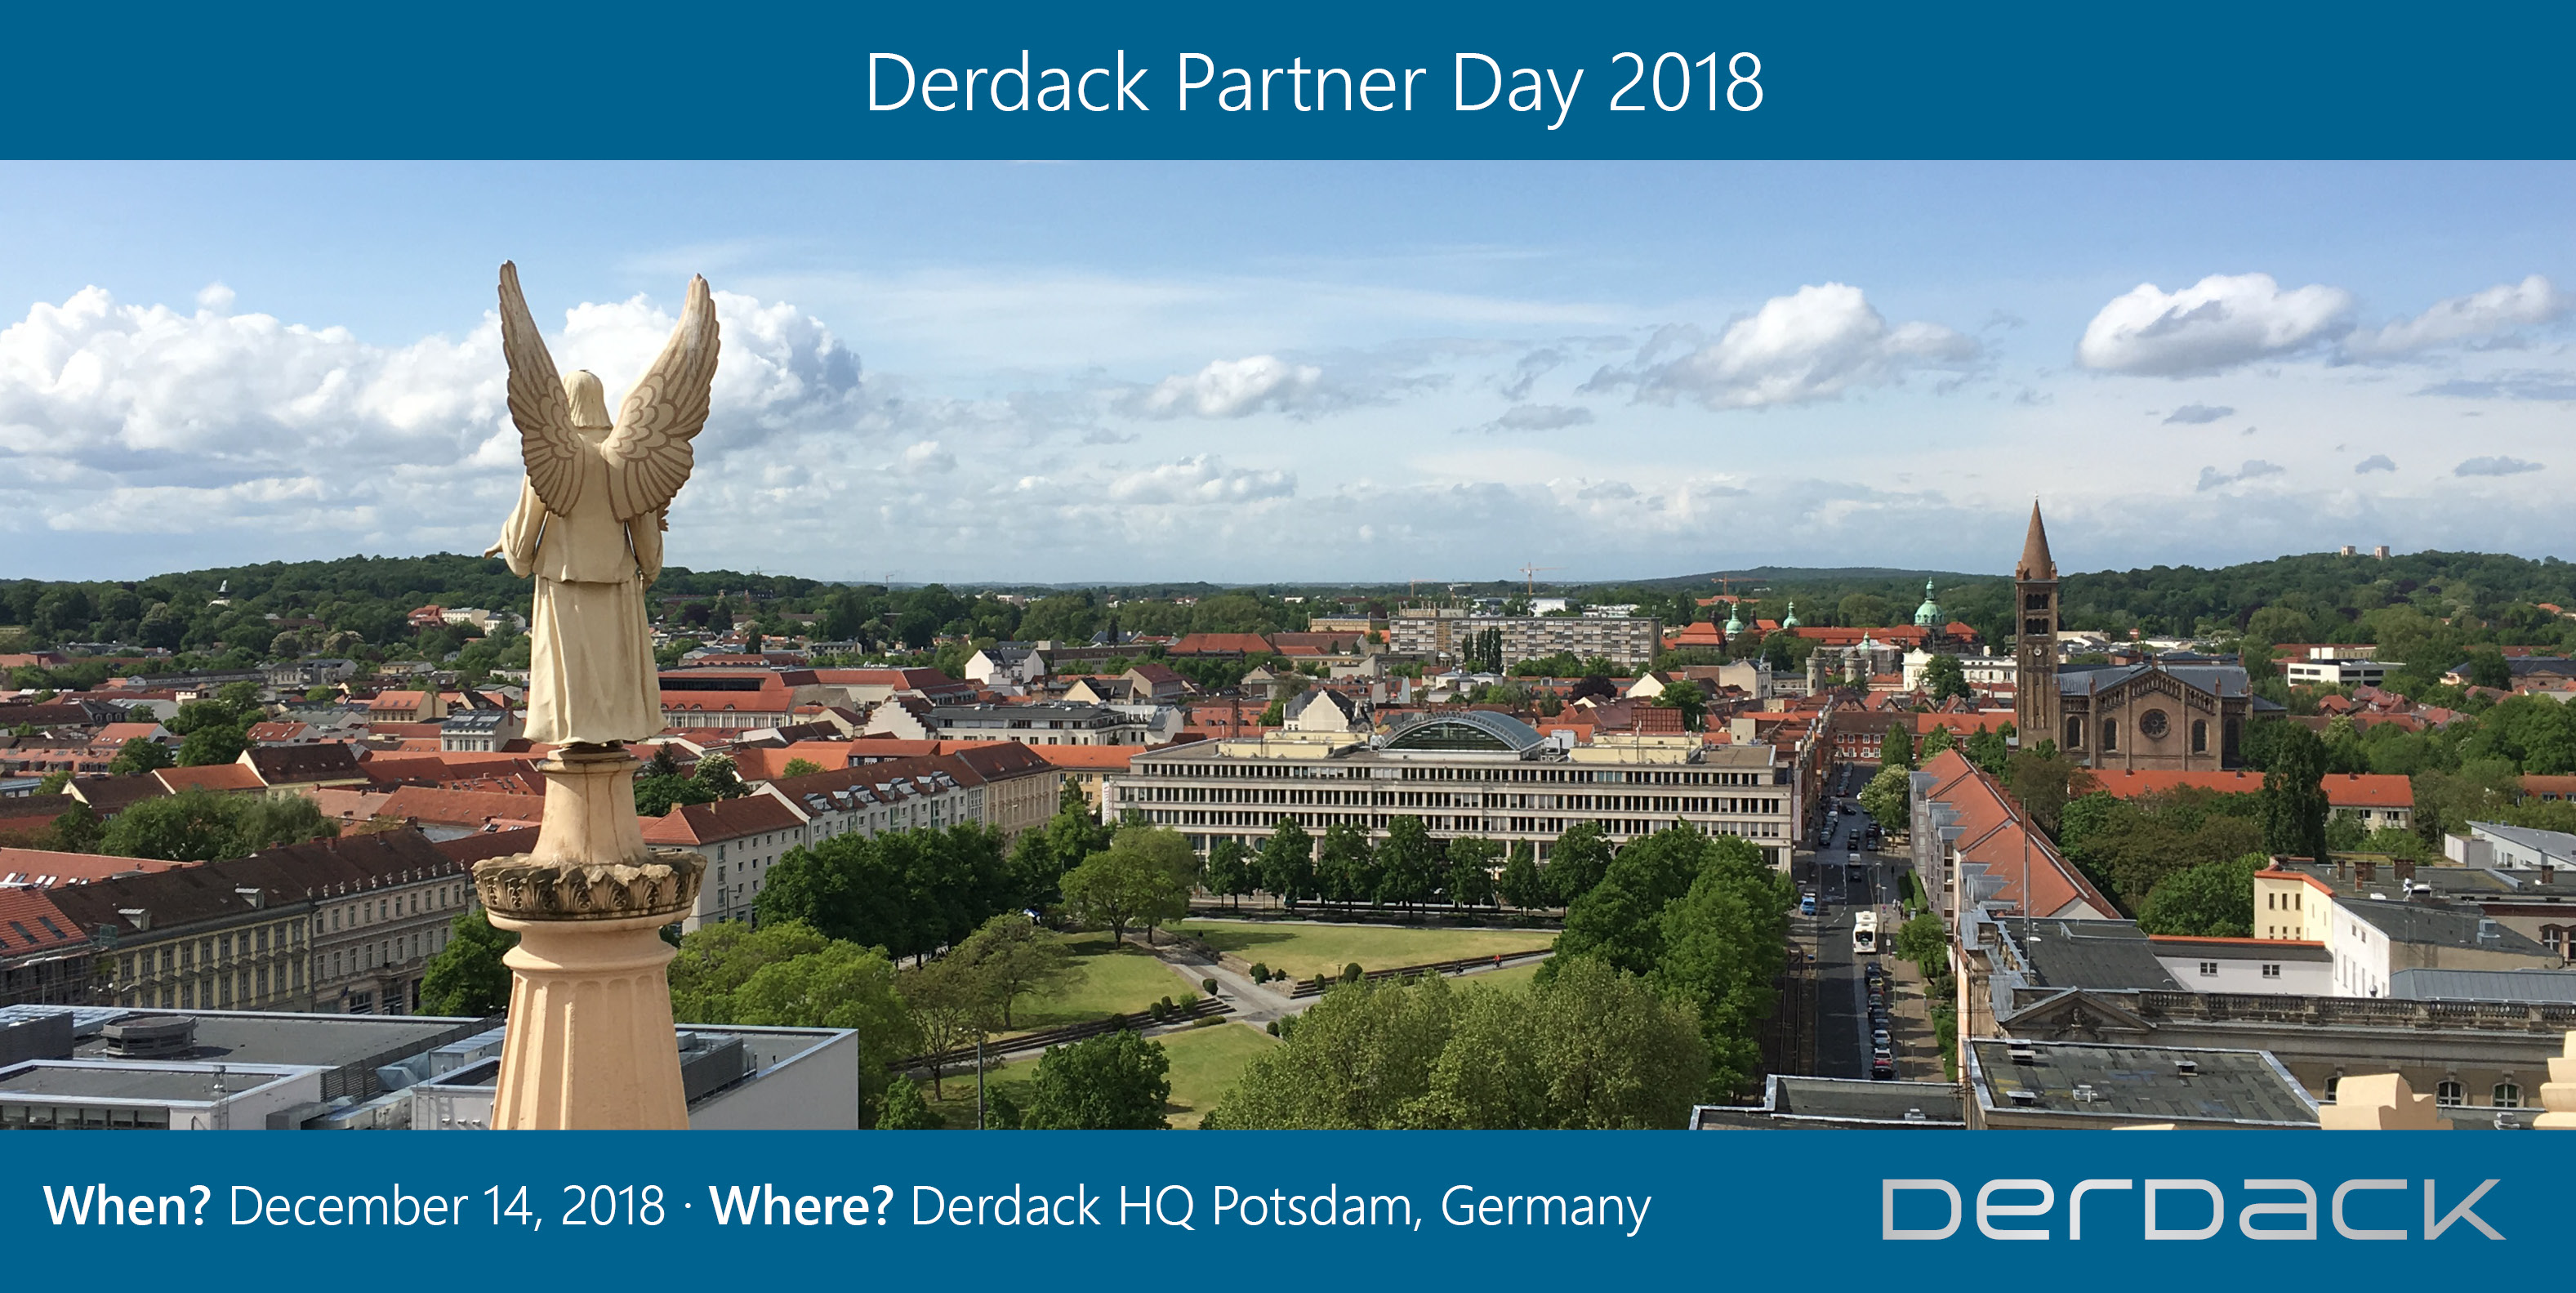 Derdack Partner Day 2018